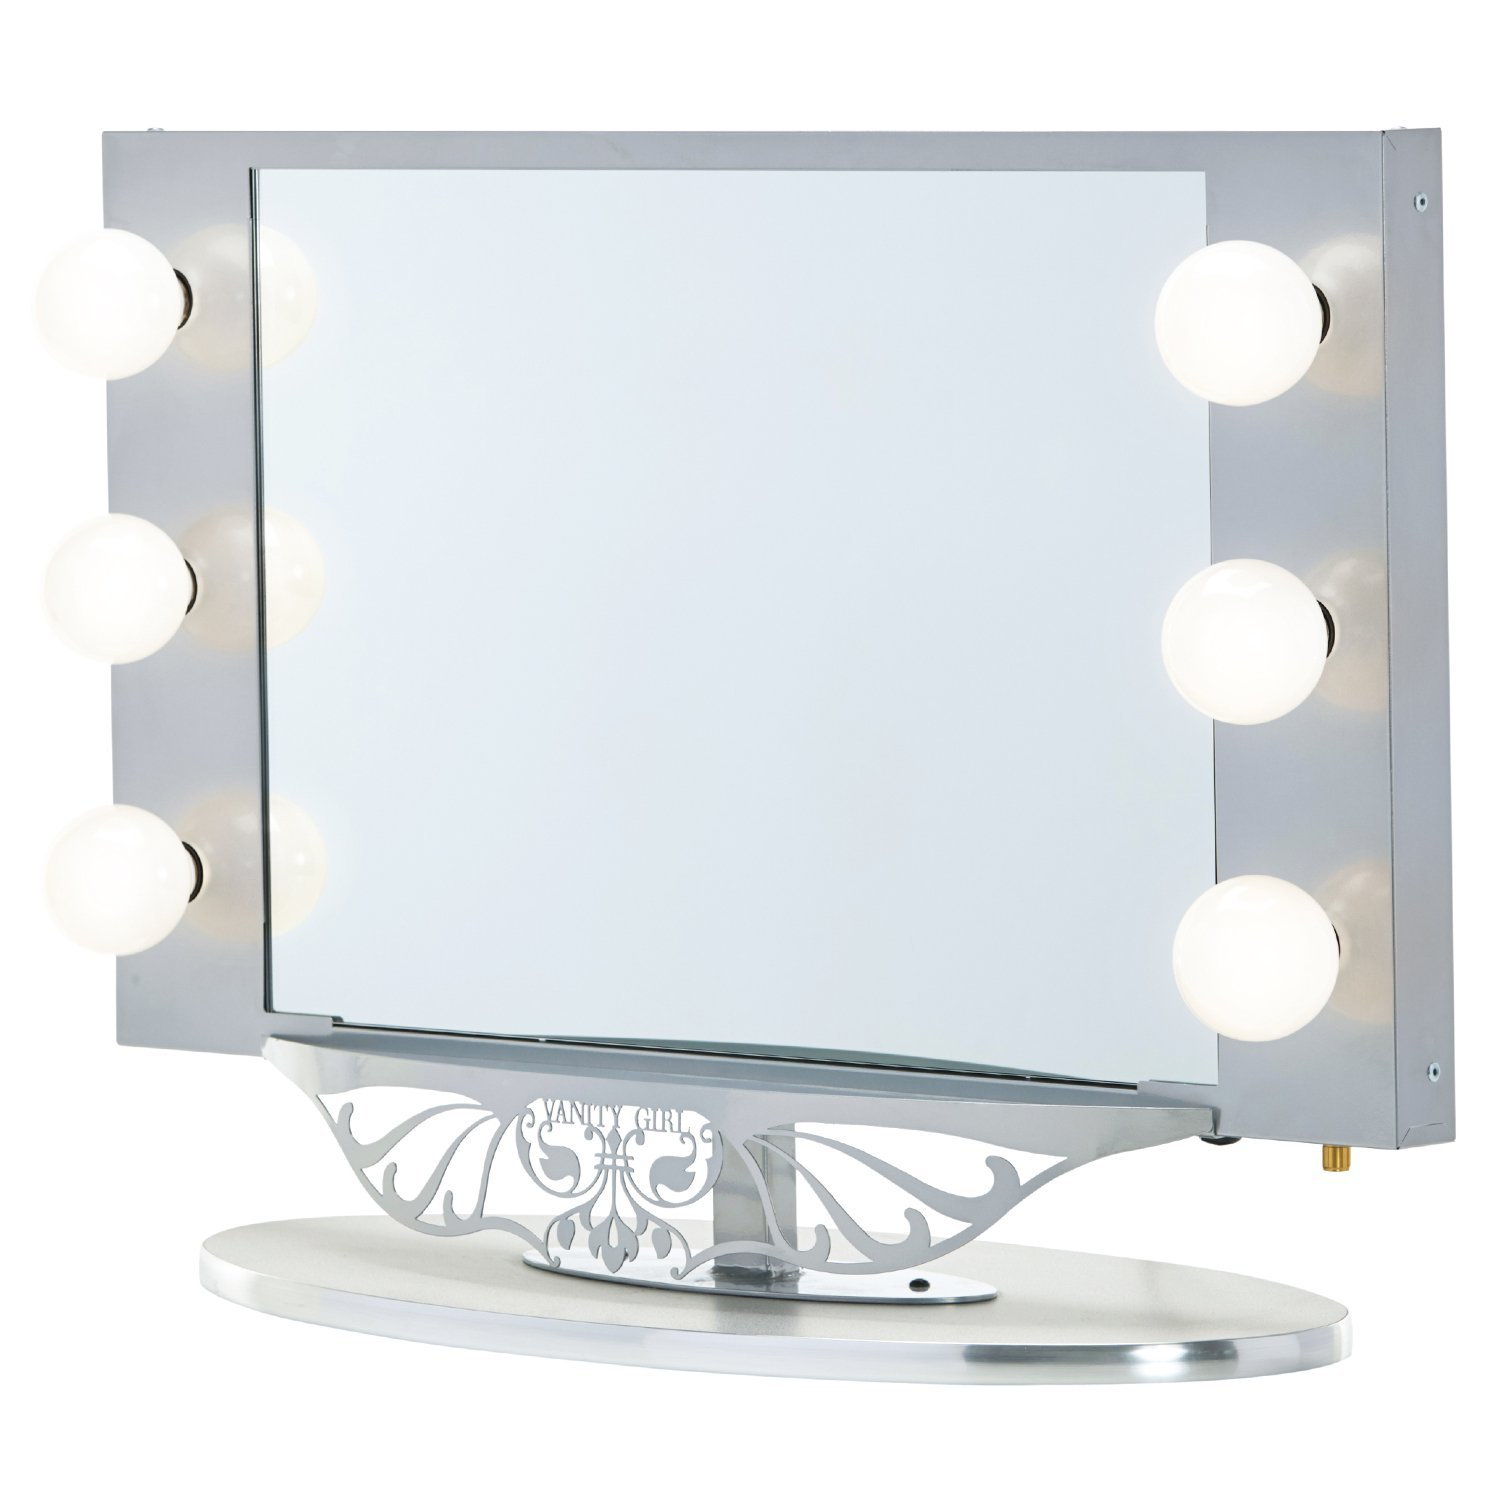 "Vanity Girl Hollywood Starlet Lighted Vanity Mirror Gloss White, 34"" x 23"""